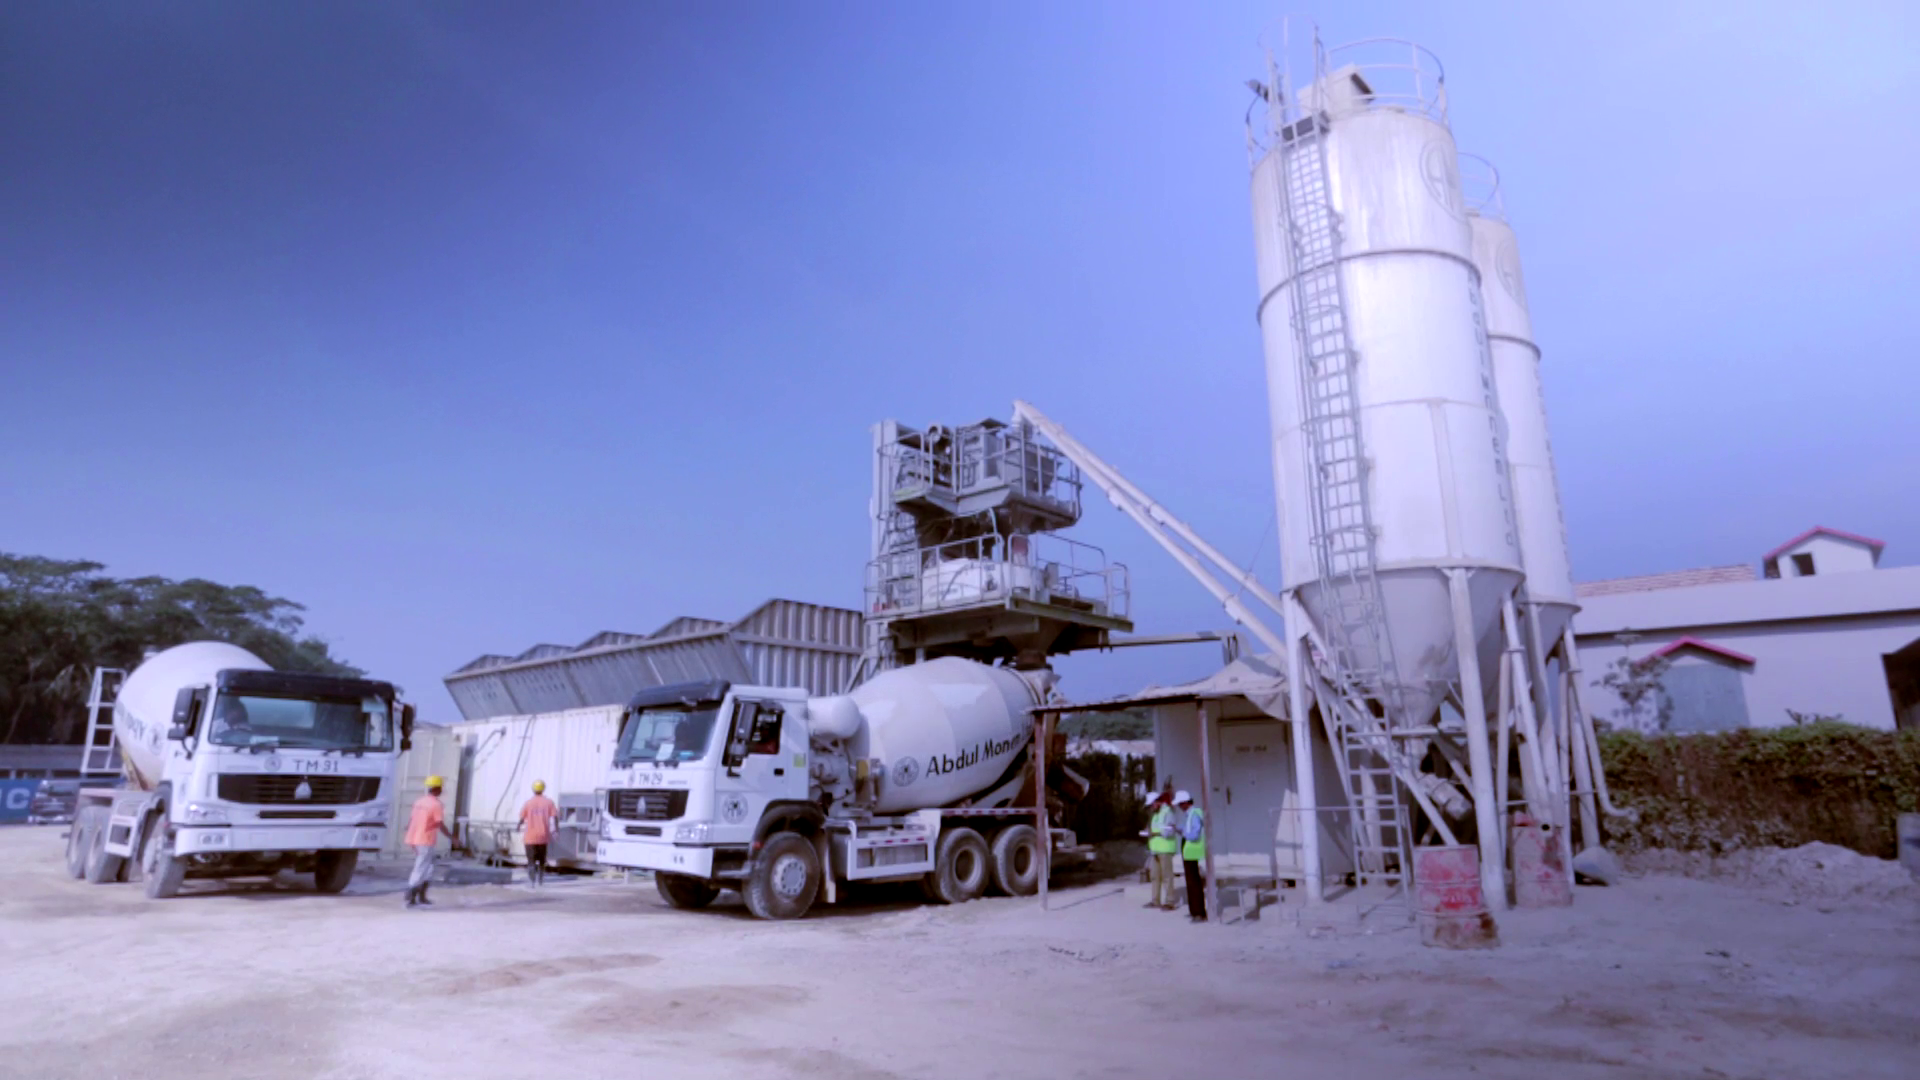 Abdul Monem Ready Mix Concrete unit